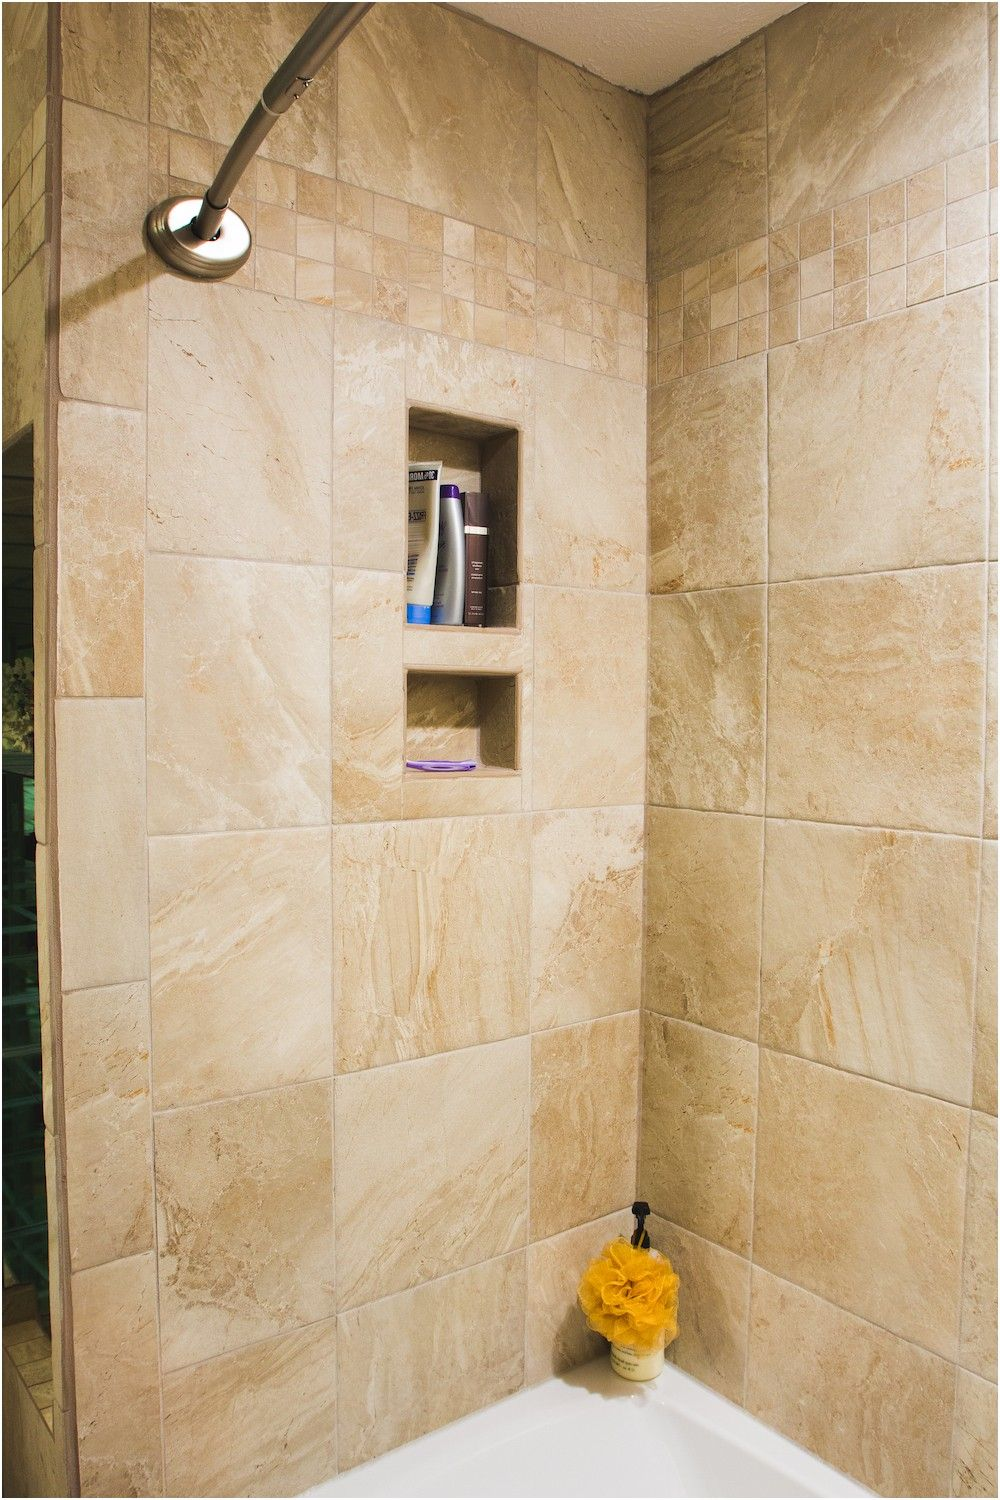 Regrouting Shower Tile Cost Regrout Shower Price From Regrout - Cost of regrouting